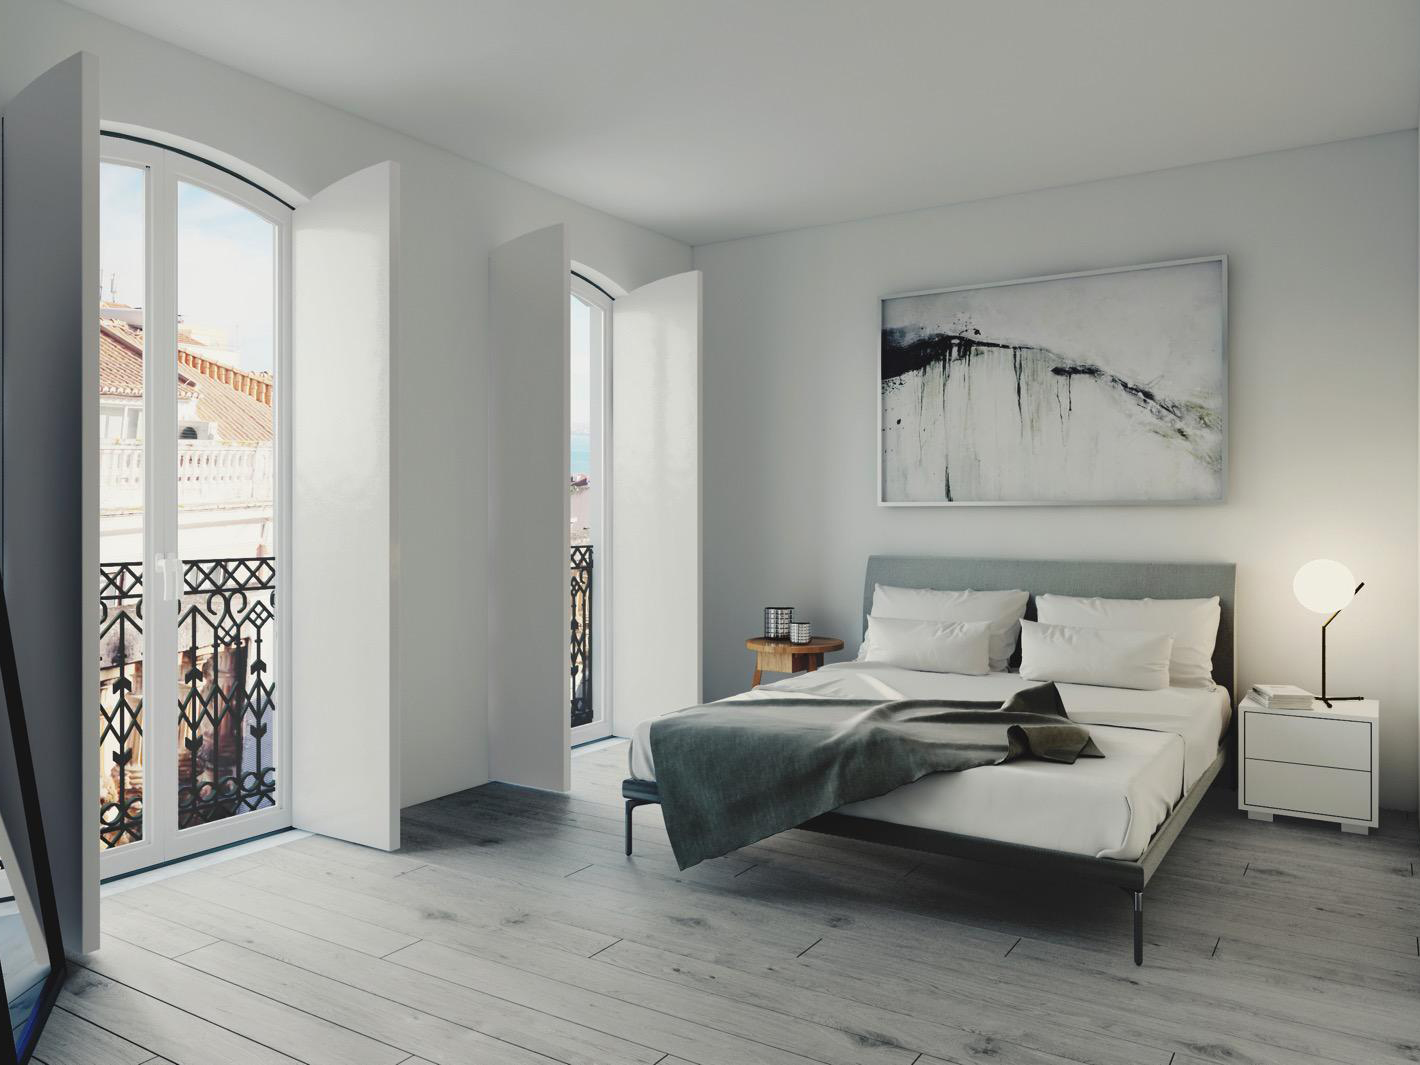 3 BEDROOM APARTMENT WITH GARAGE, IN LAPA, LISBON